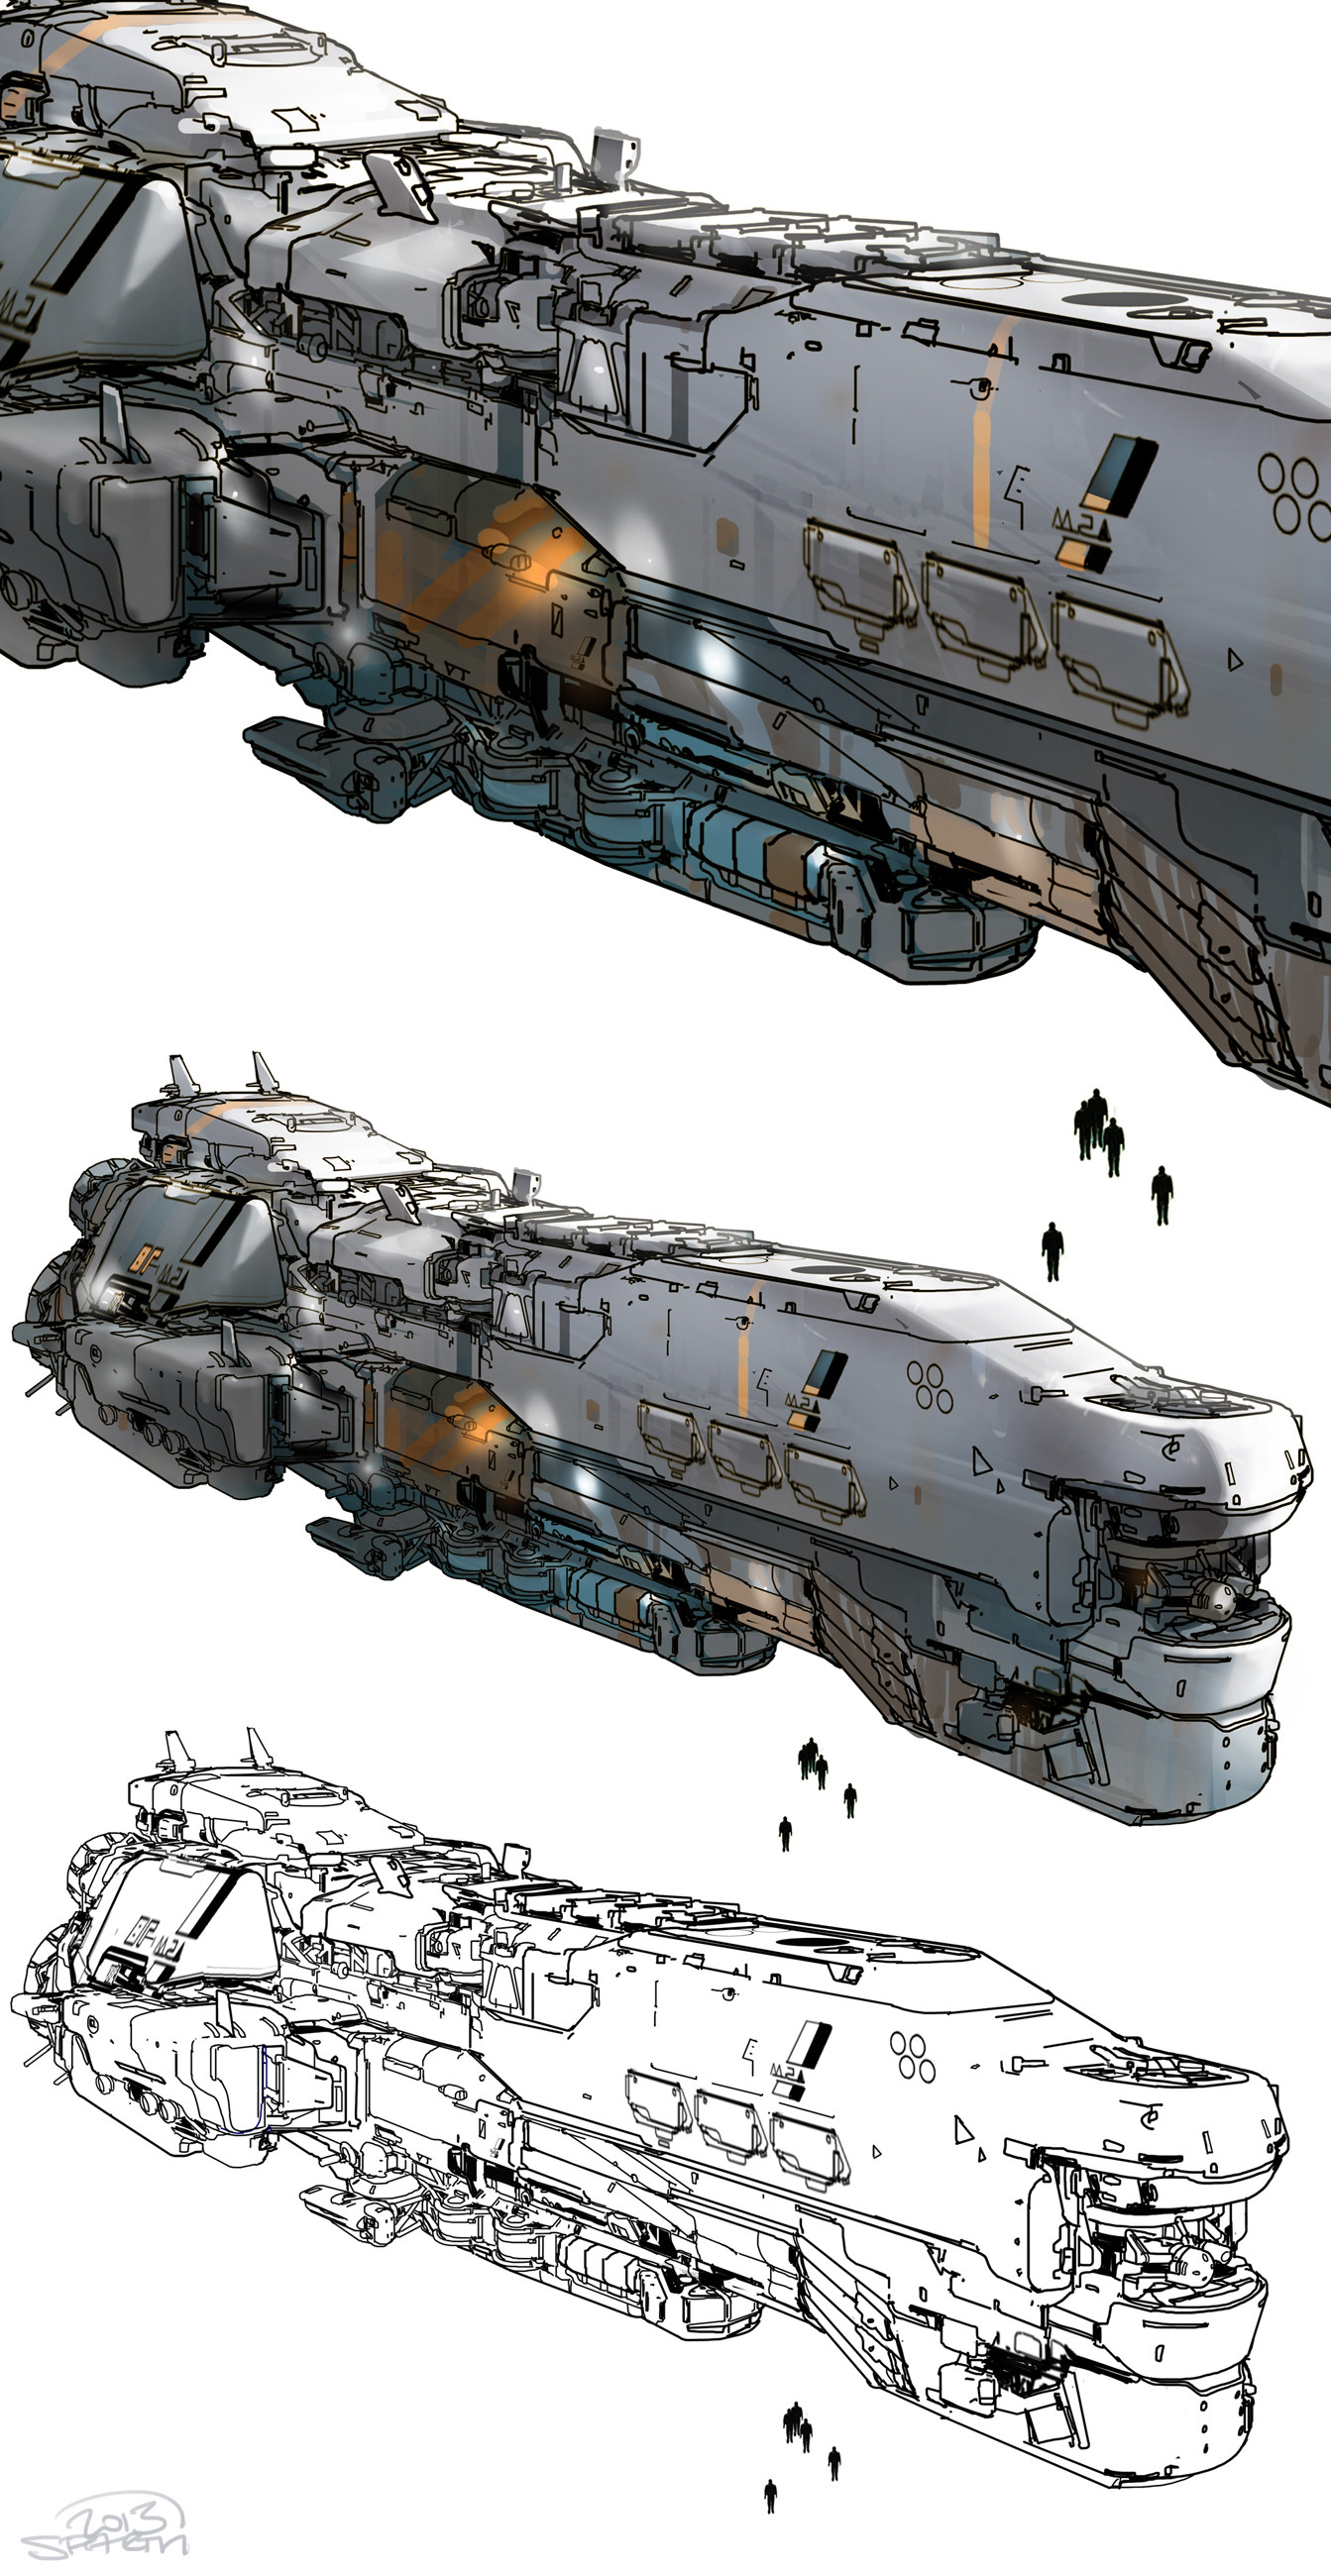 Sparth sparth halo5 meridian spaceship